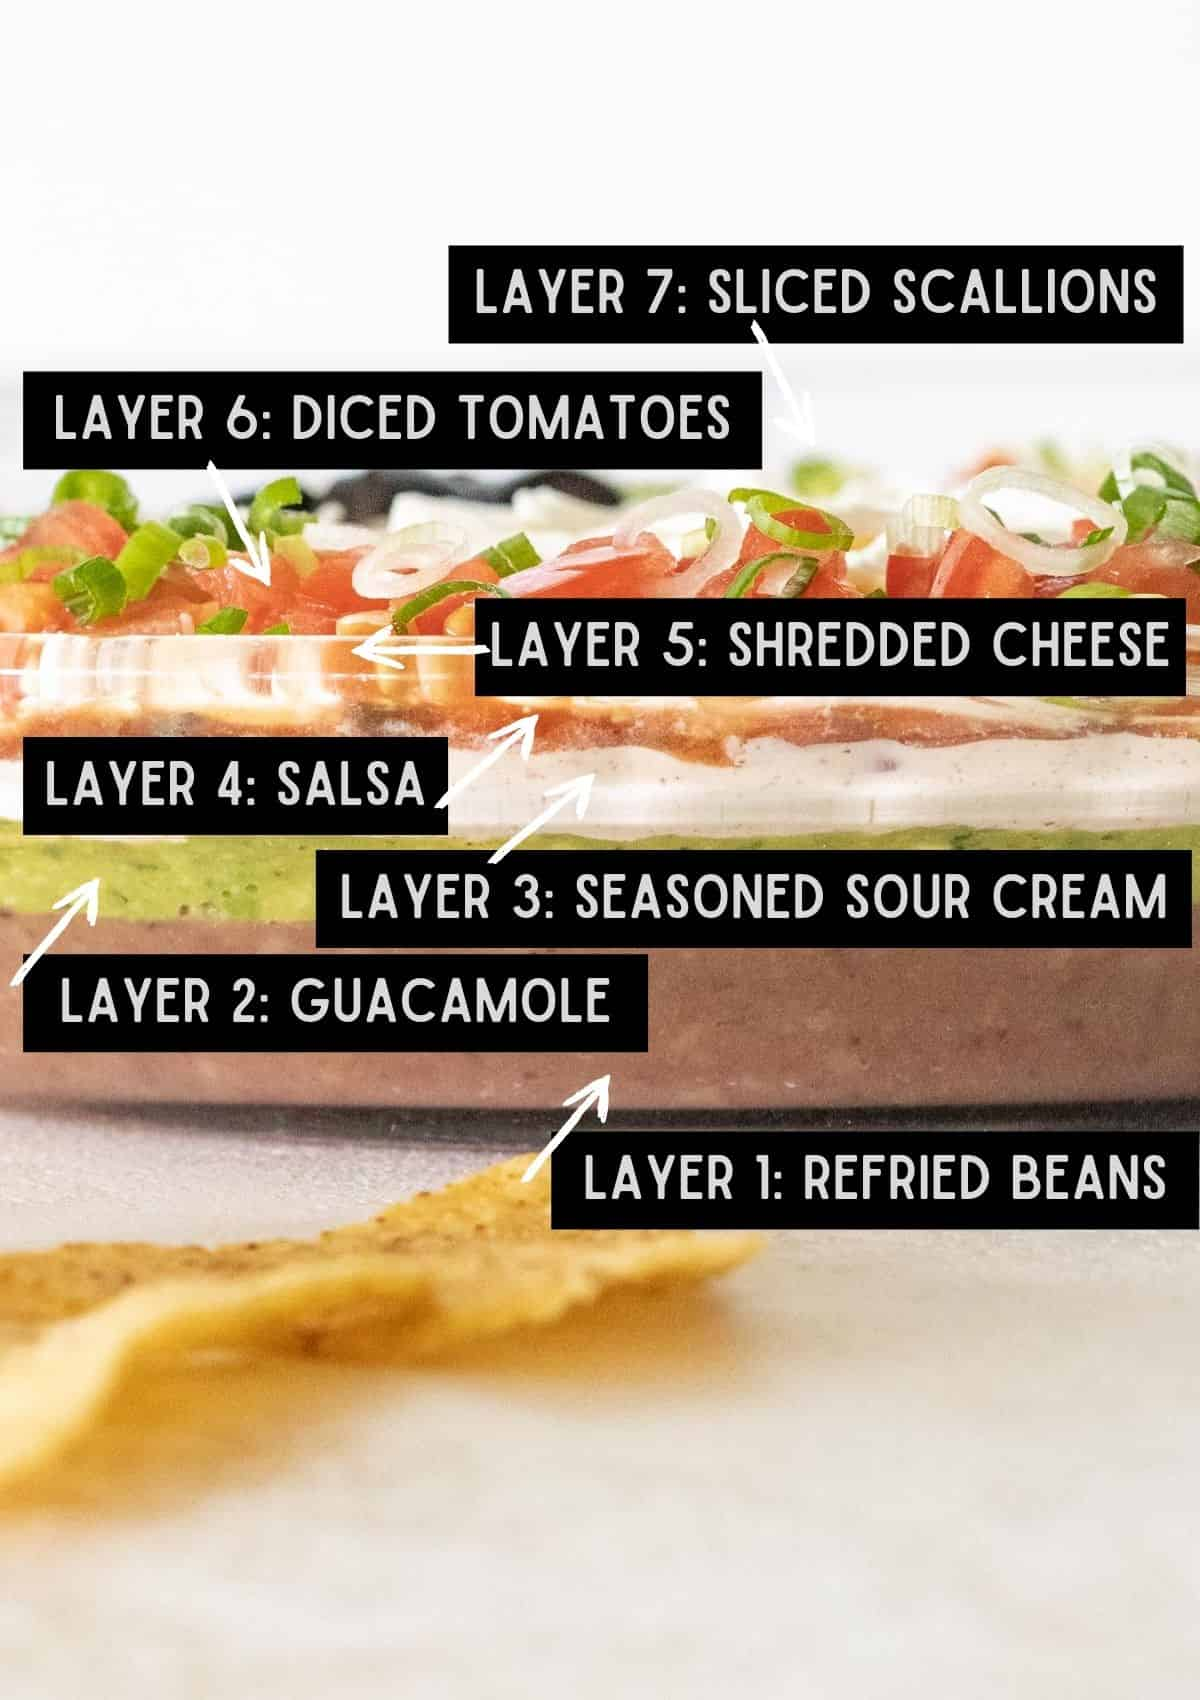 Labelled layers in 7 layer Halloween taco dip.